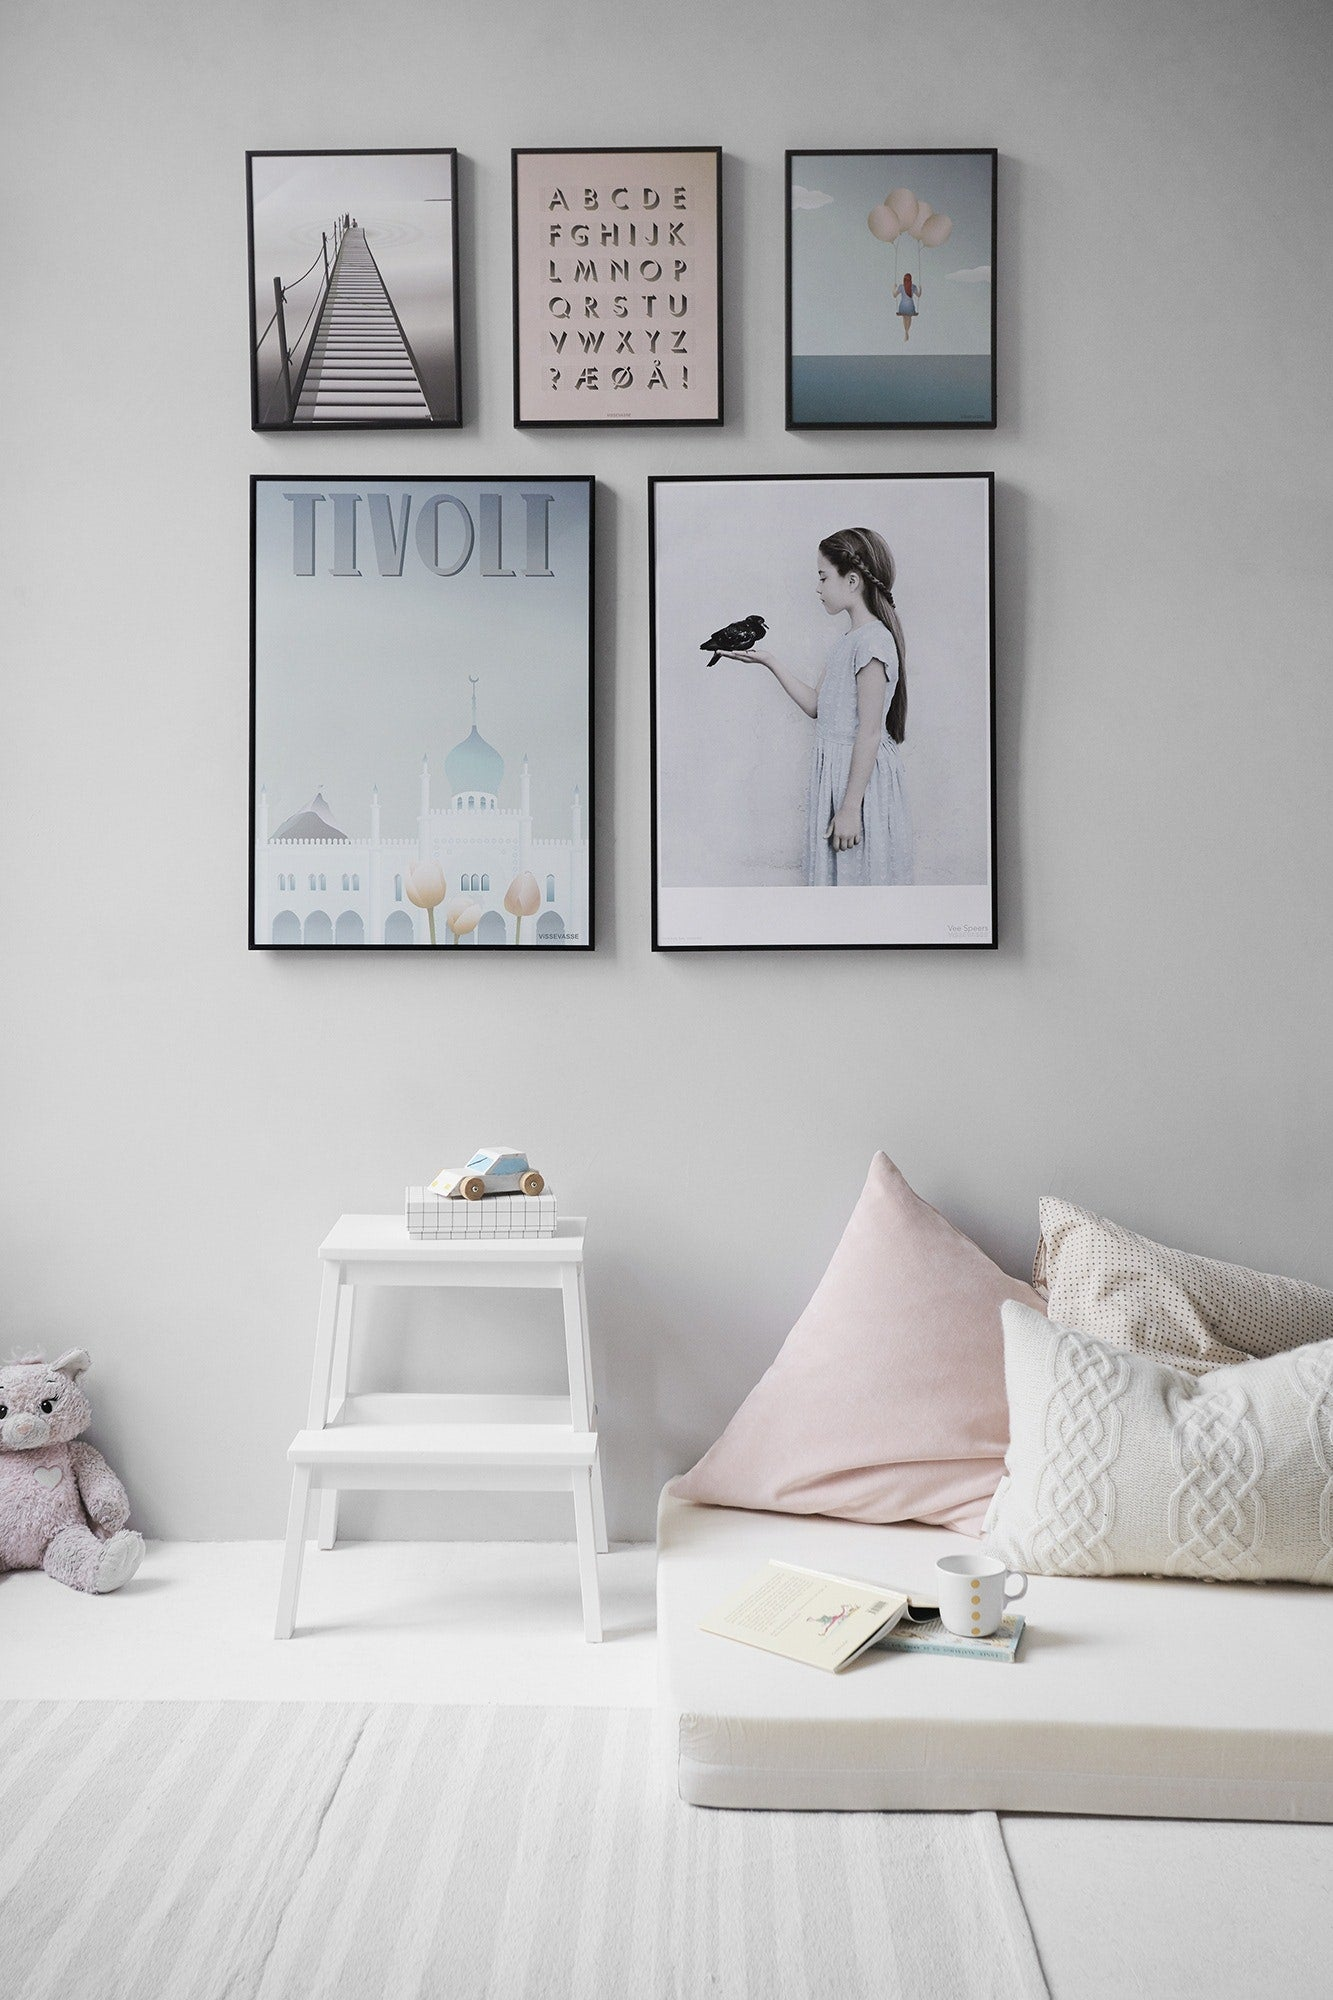 Gallery wall, 3 small frames, 2 large frames, white floorboards, comfortable boho chic living with cushions. White wash floorboards